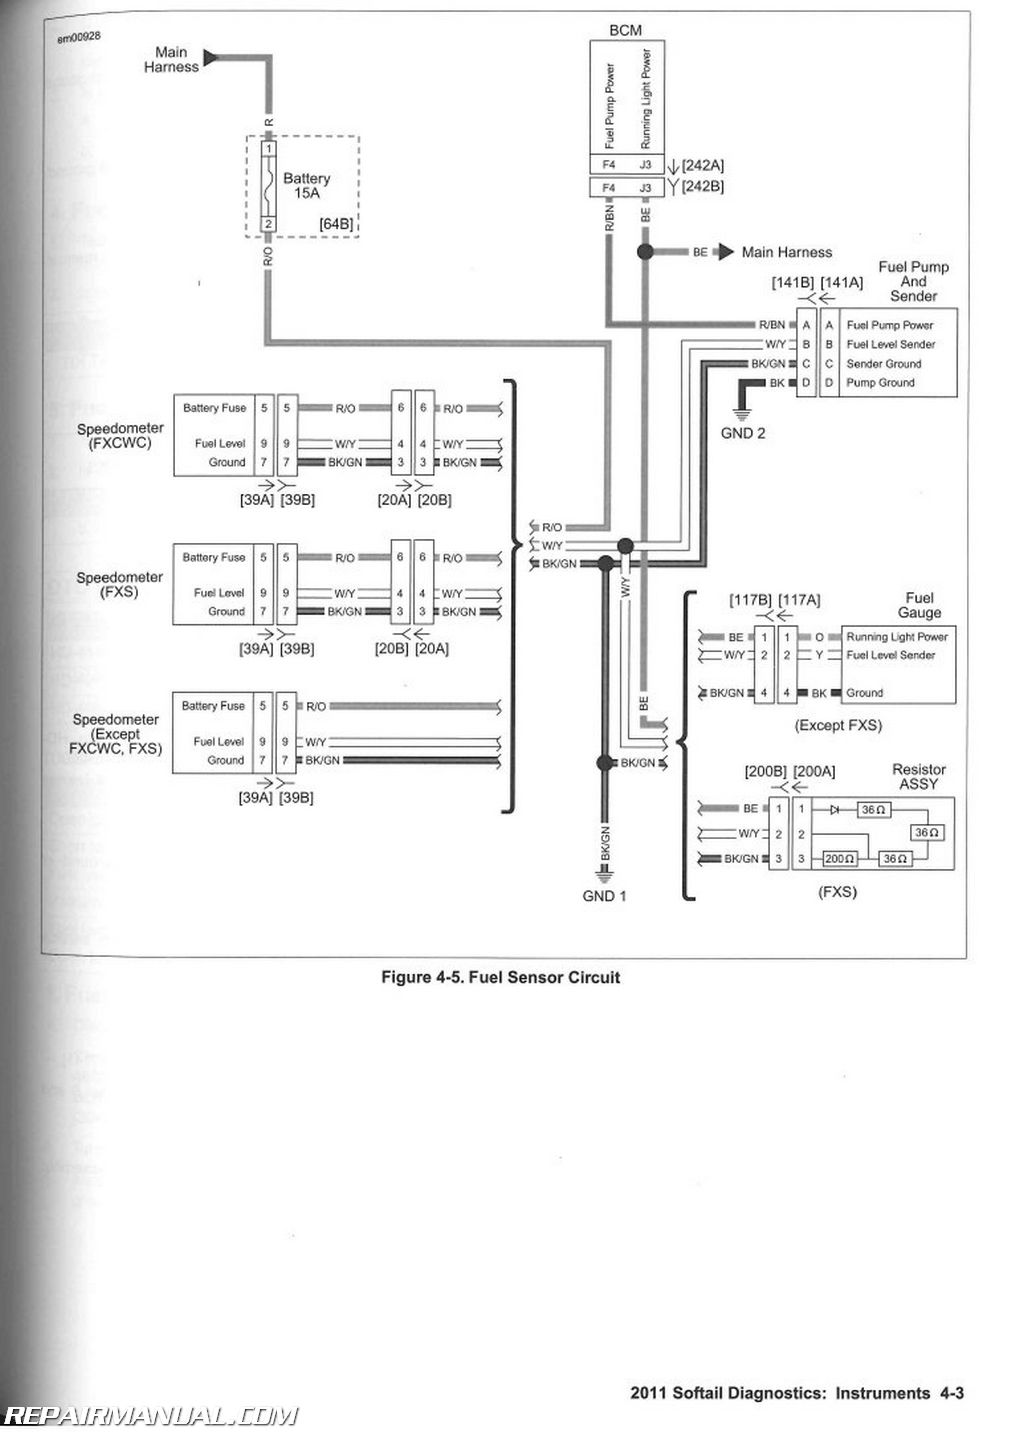 A Wiring Diagram For Fxdc Harley Davidson on 1992 ford wiring diagram, 1992 dodge truck wiring diagram, 1992 evinrude wiring diagram,